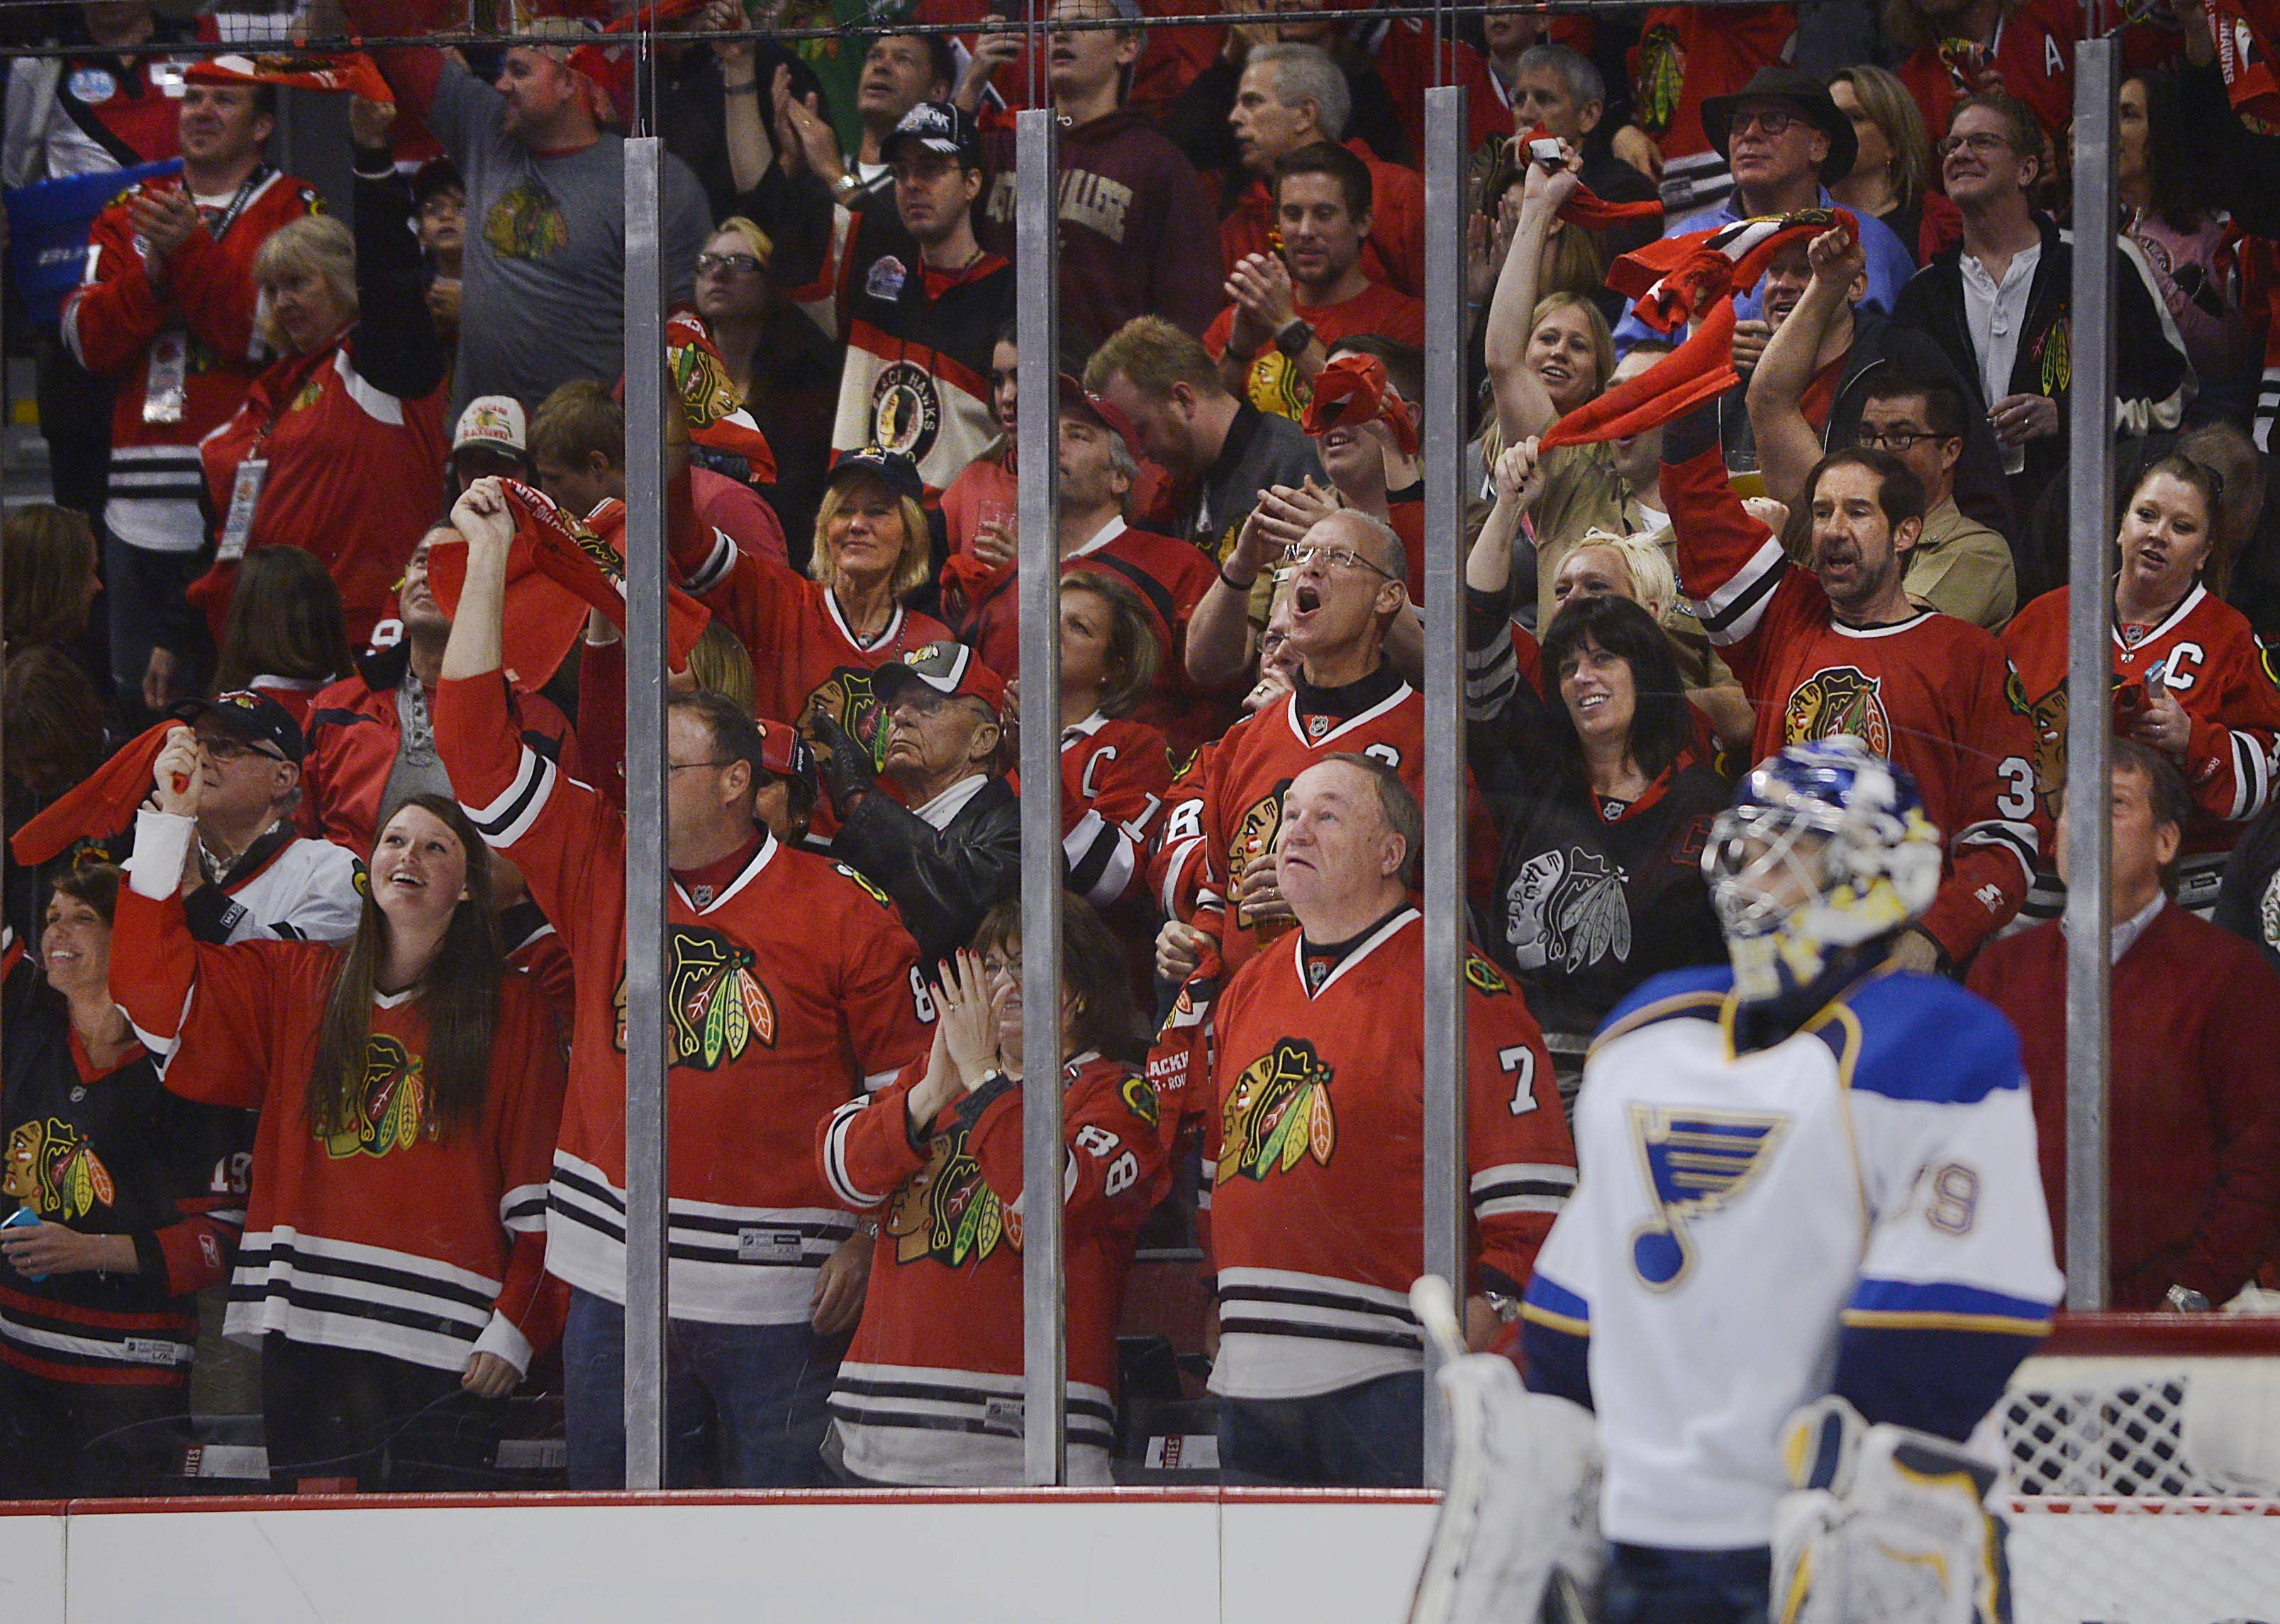 The home team fans celebrate Brian Bickell's goal in the first period as St. Louis Blues goalkeeper Ryan Miller stands motionless Sunday in Game 6 of the NHL first round playoffs at the United Center in Chicago.